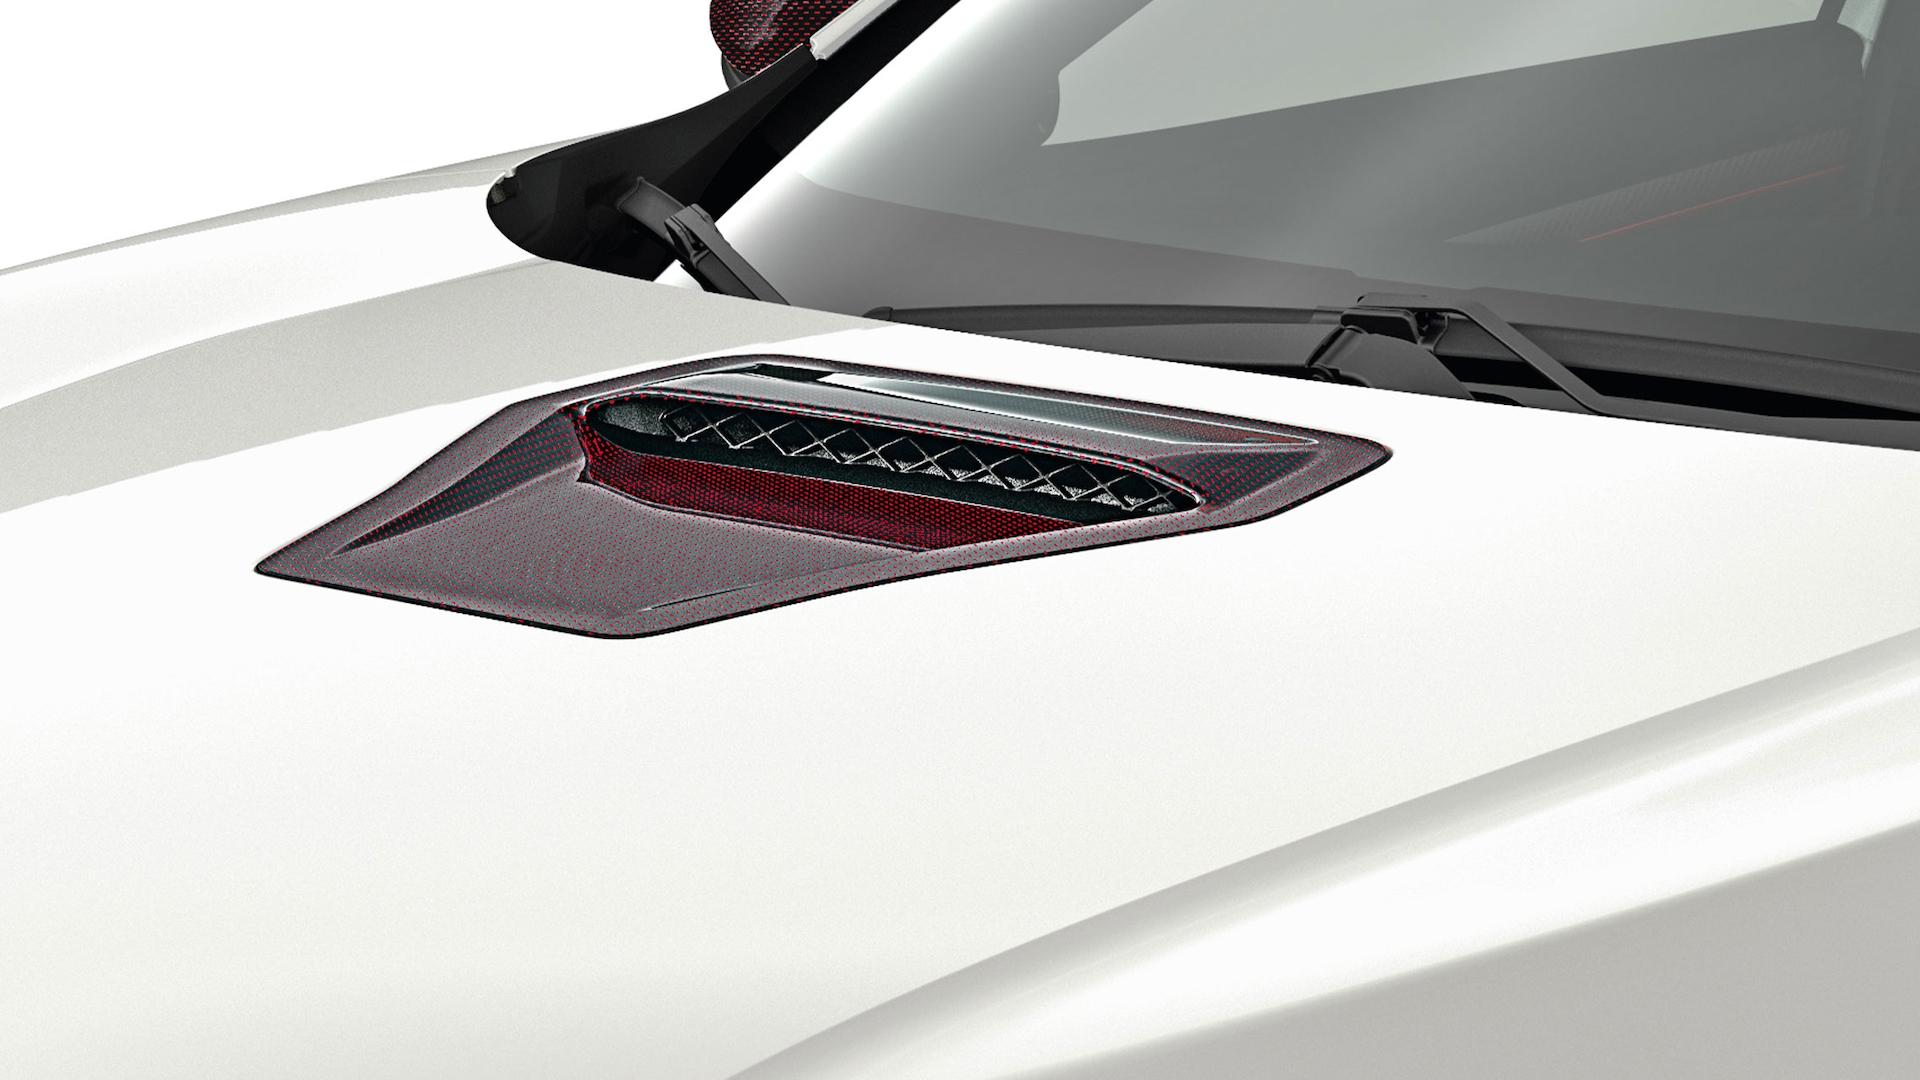 Detail view of Honda Genuine Accessory carbon fiber hood scoop on the 2021 Honda Civic Type R in Championship White.